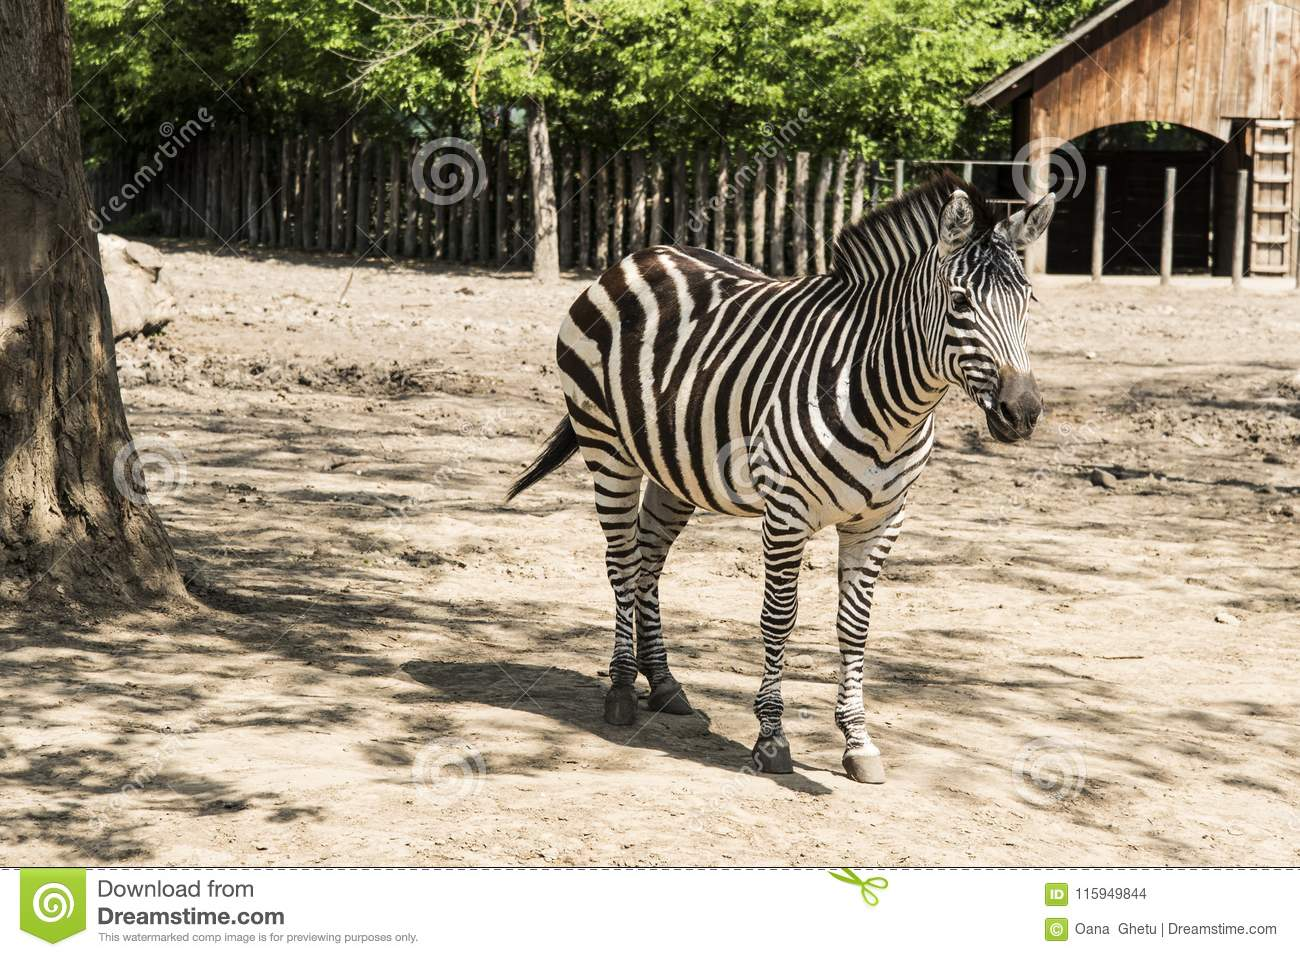 Zebras are several species of African